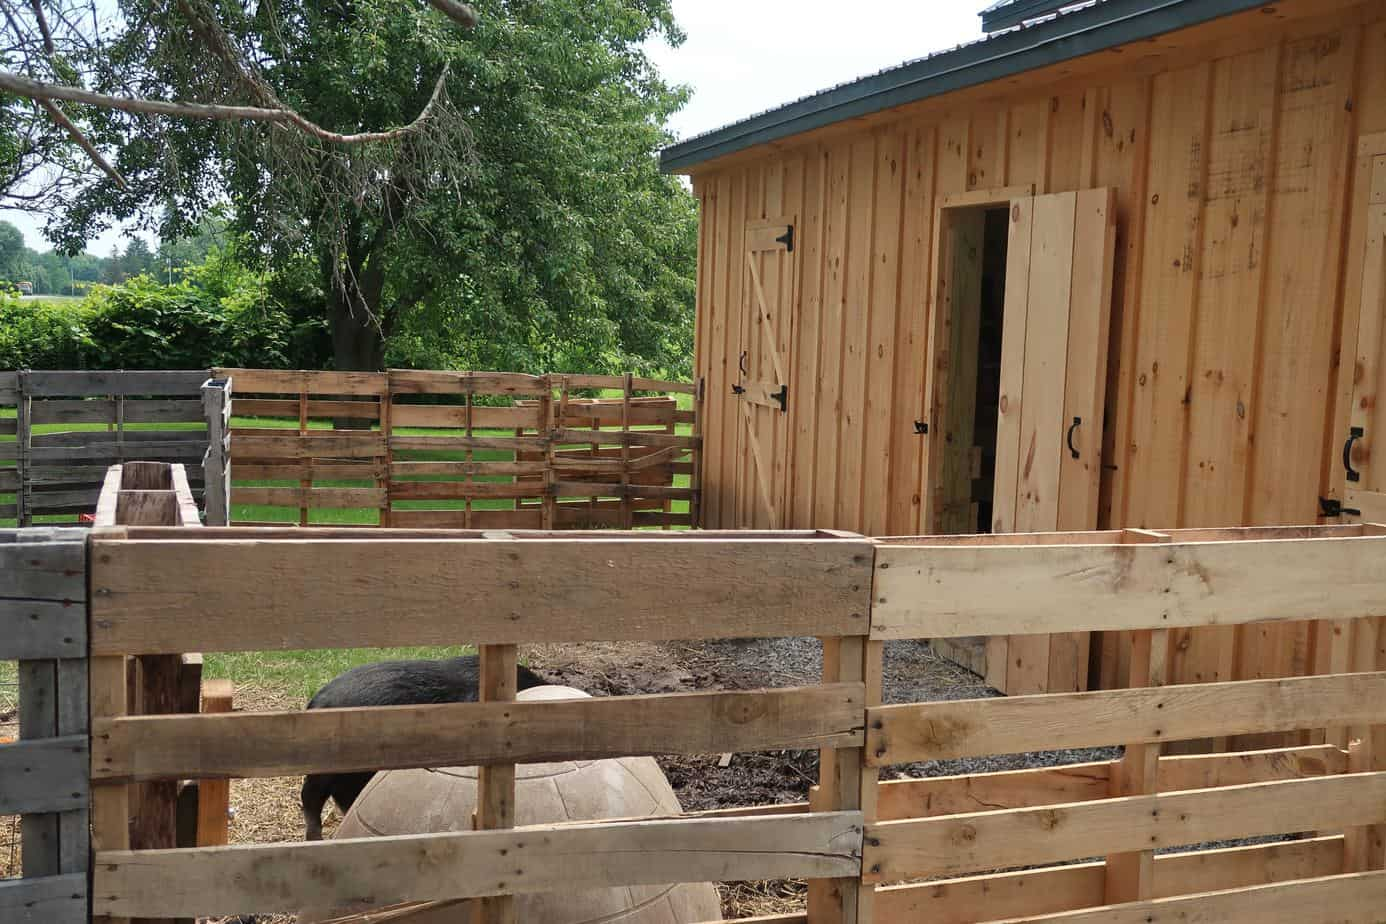 How To Build A Mini Pig Pen Using Pallets In Under 60